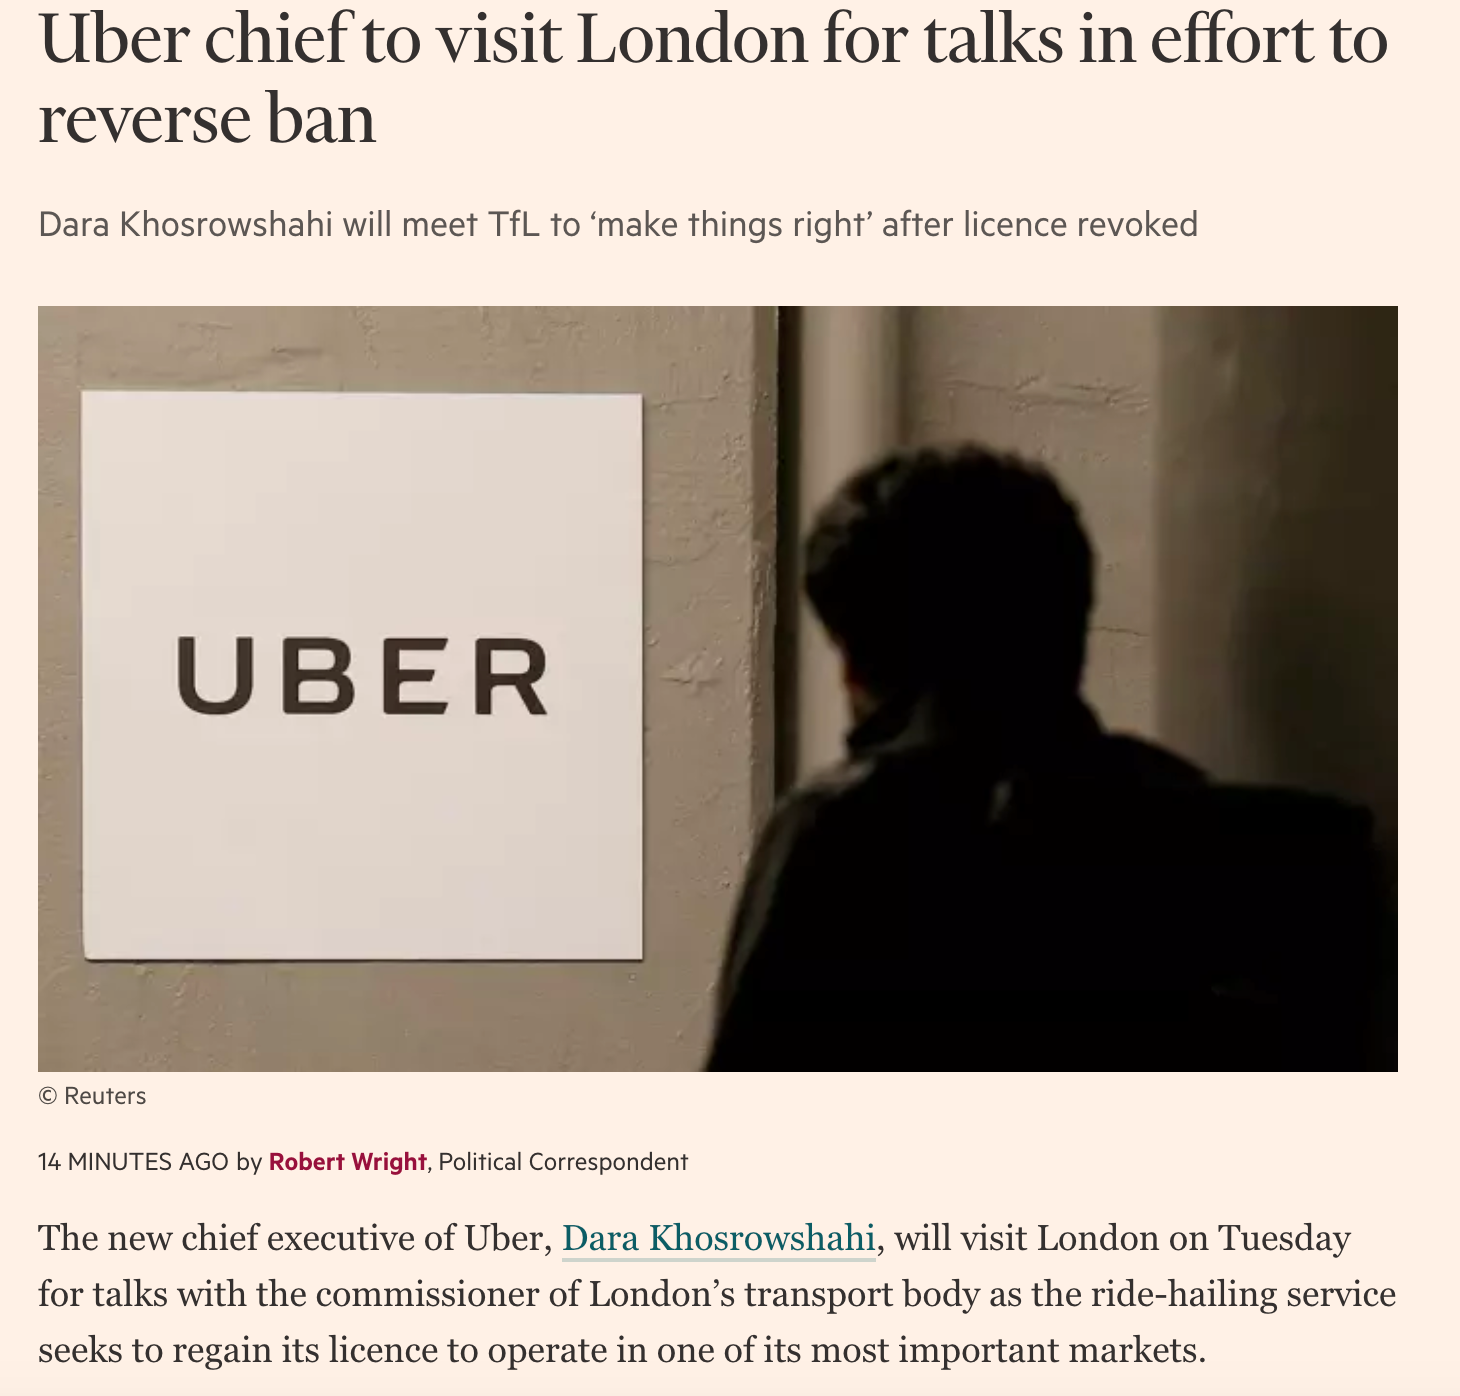 Uber Chief will visit London after all